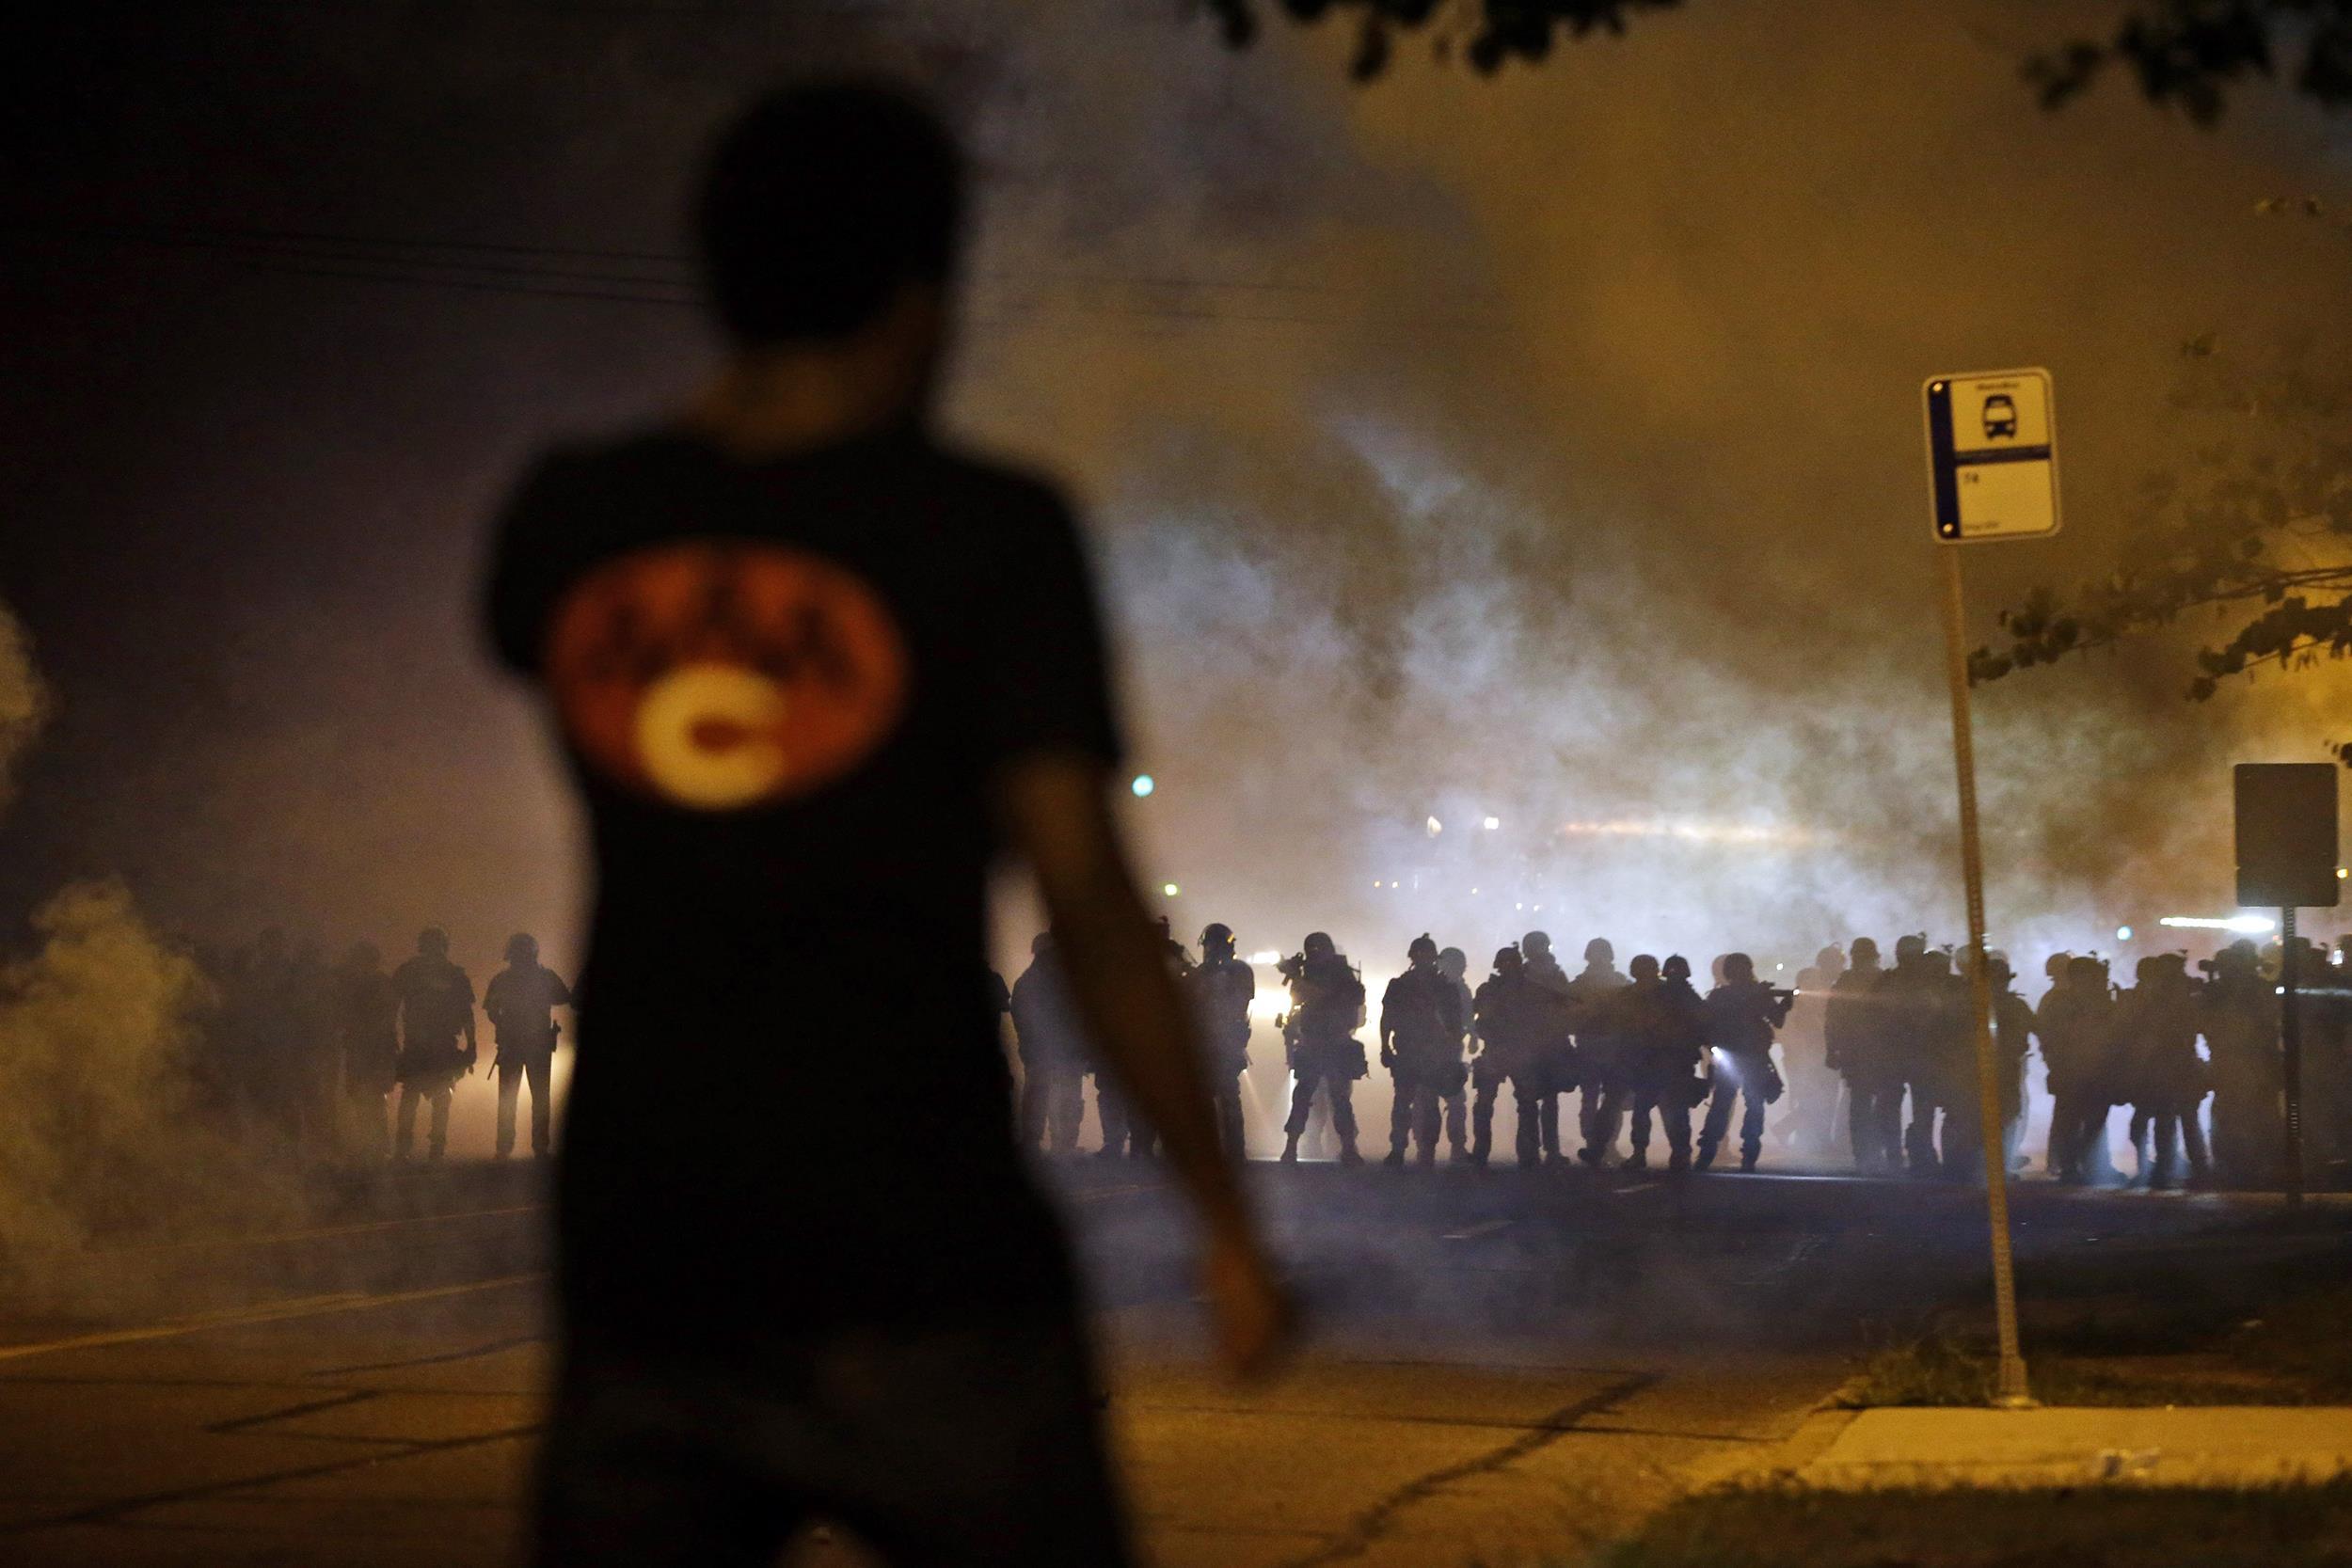 Image: A man watches as police walk through a cloud of smoke during a clash with protesters